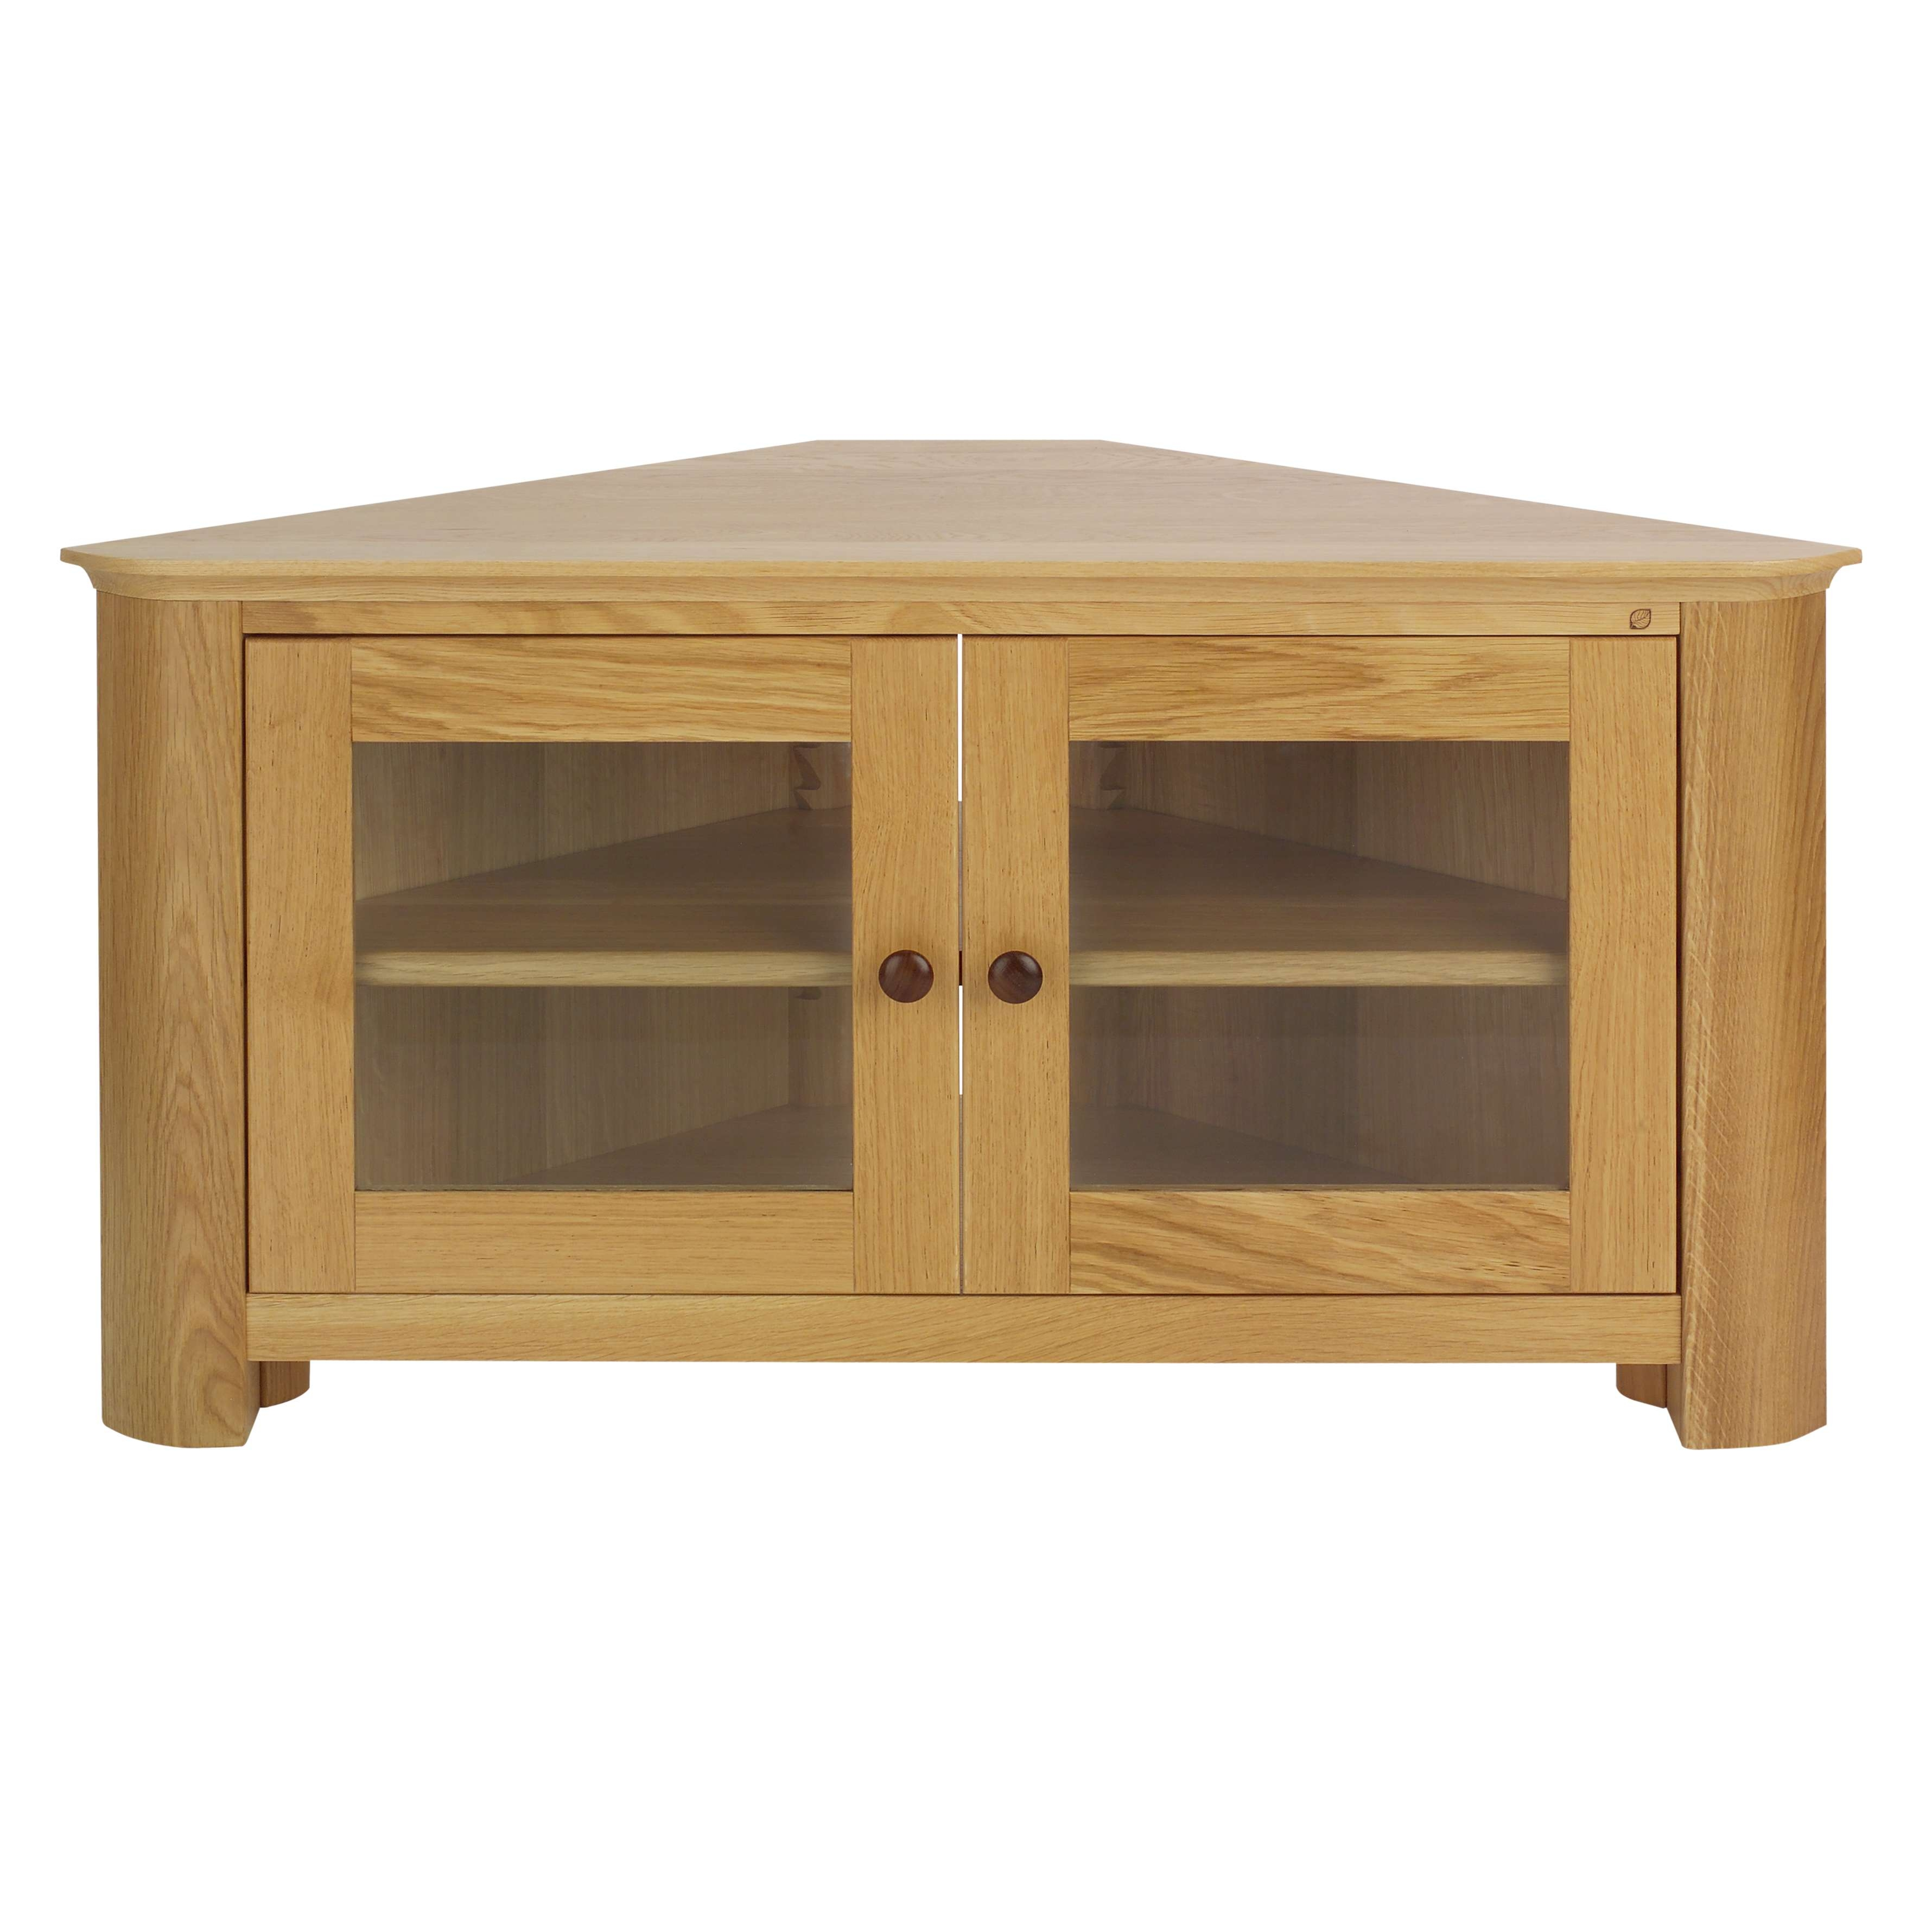 Tv Cabinet Kitchen Corner Doors And Pantry Cabinet Tall Pantry Cabinet With